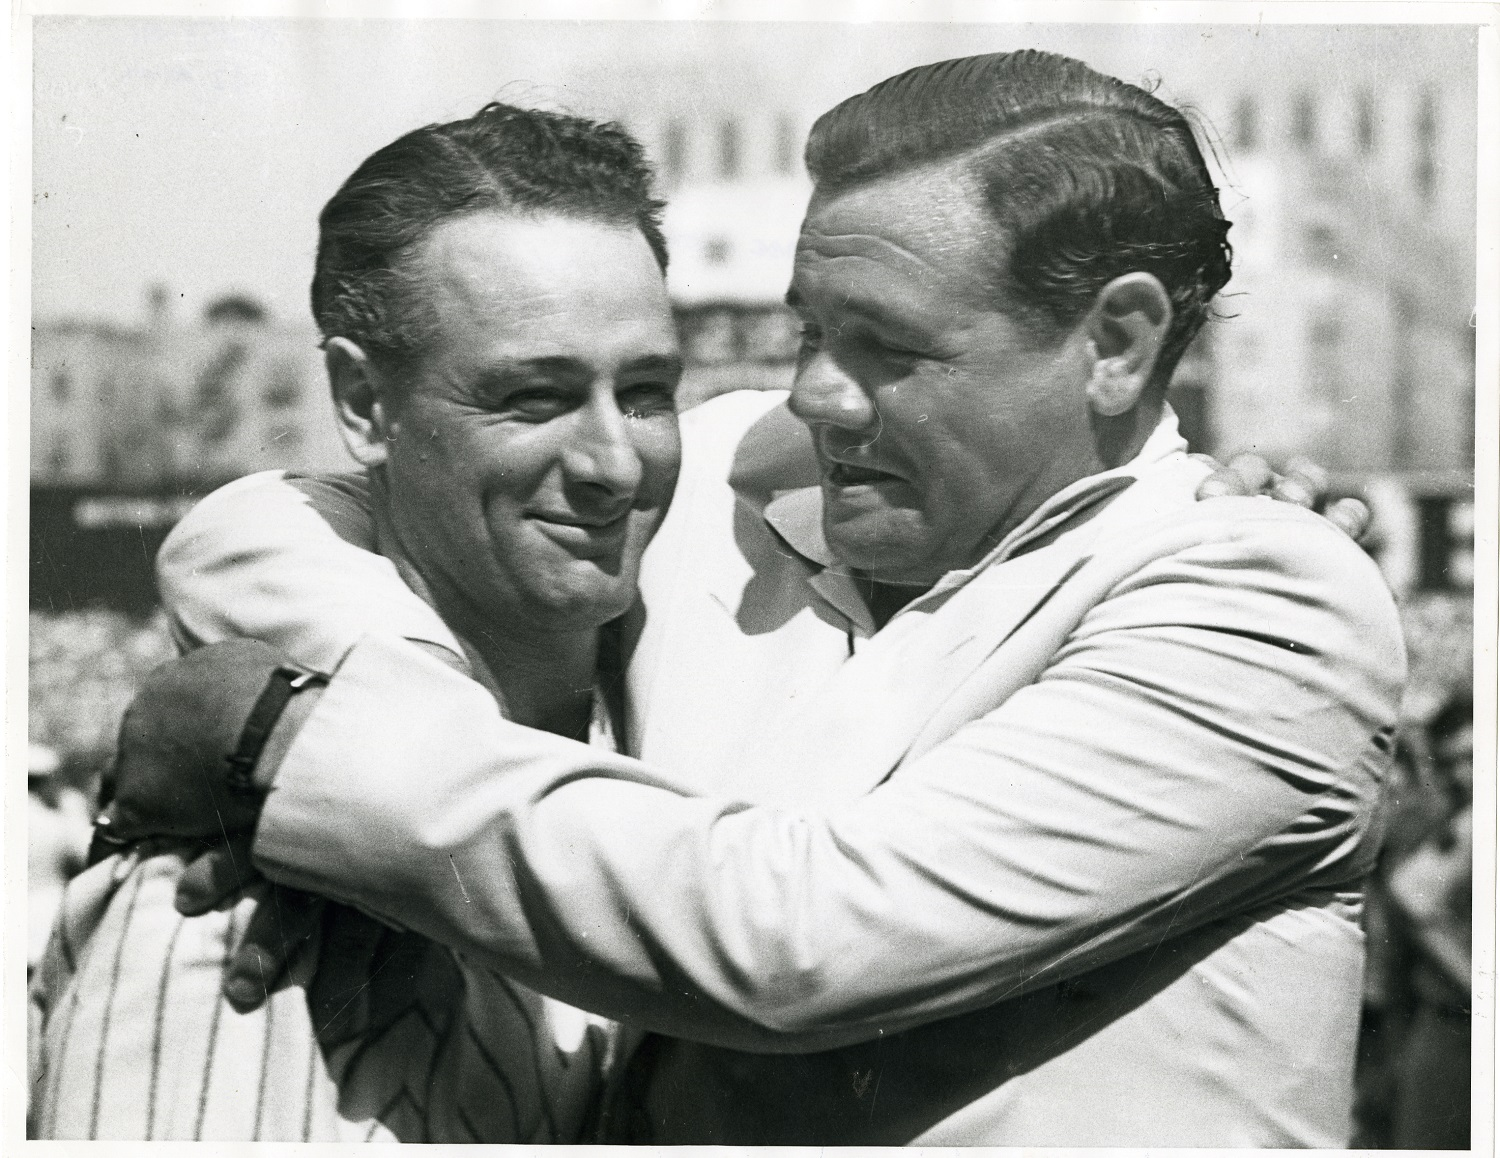 lou gehrig You are eligible for a full refund if no shippingpass-eligible orders have been placed you cannot receive a refund if you have placed a shippingpass-eligible order.